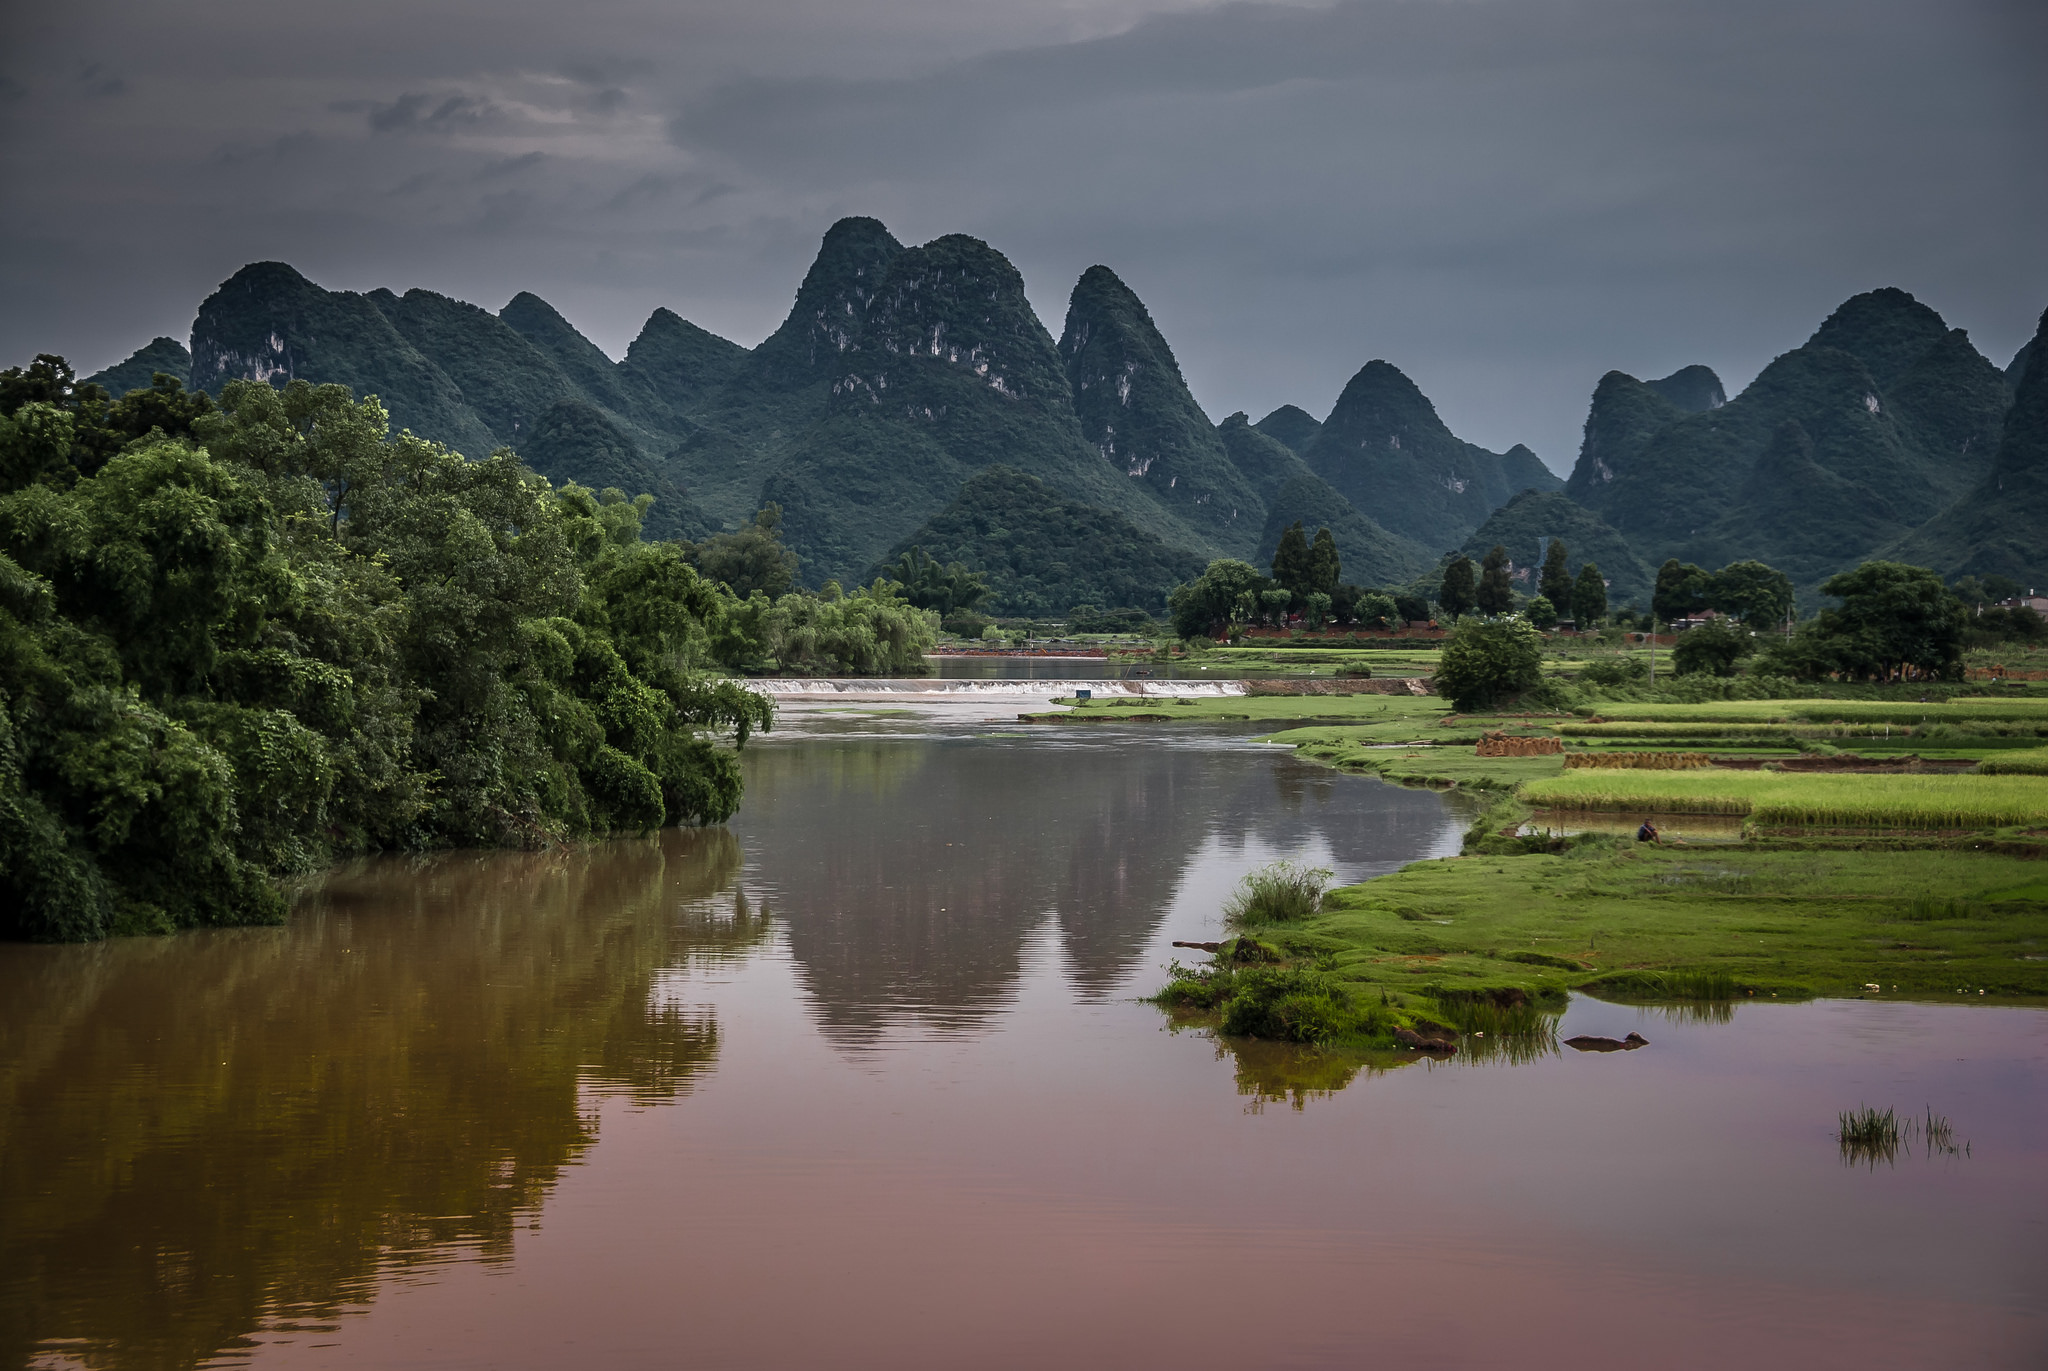 <p>The Li River in Guilin, China. Flickr/Bernd Thaler</p>